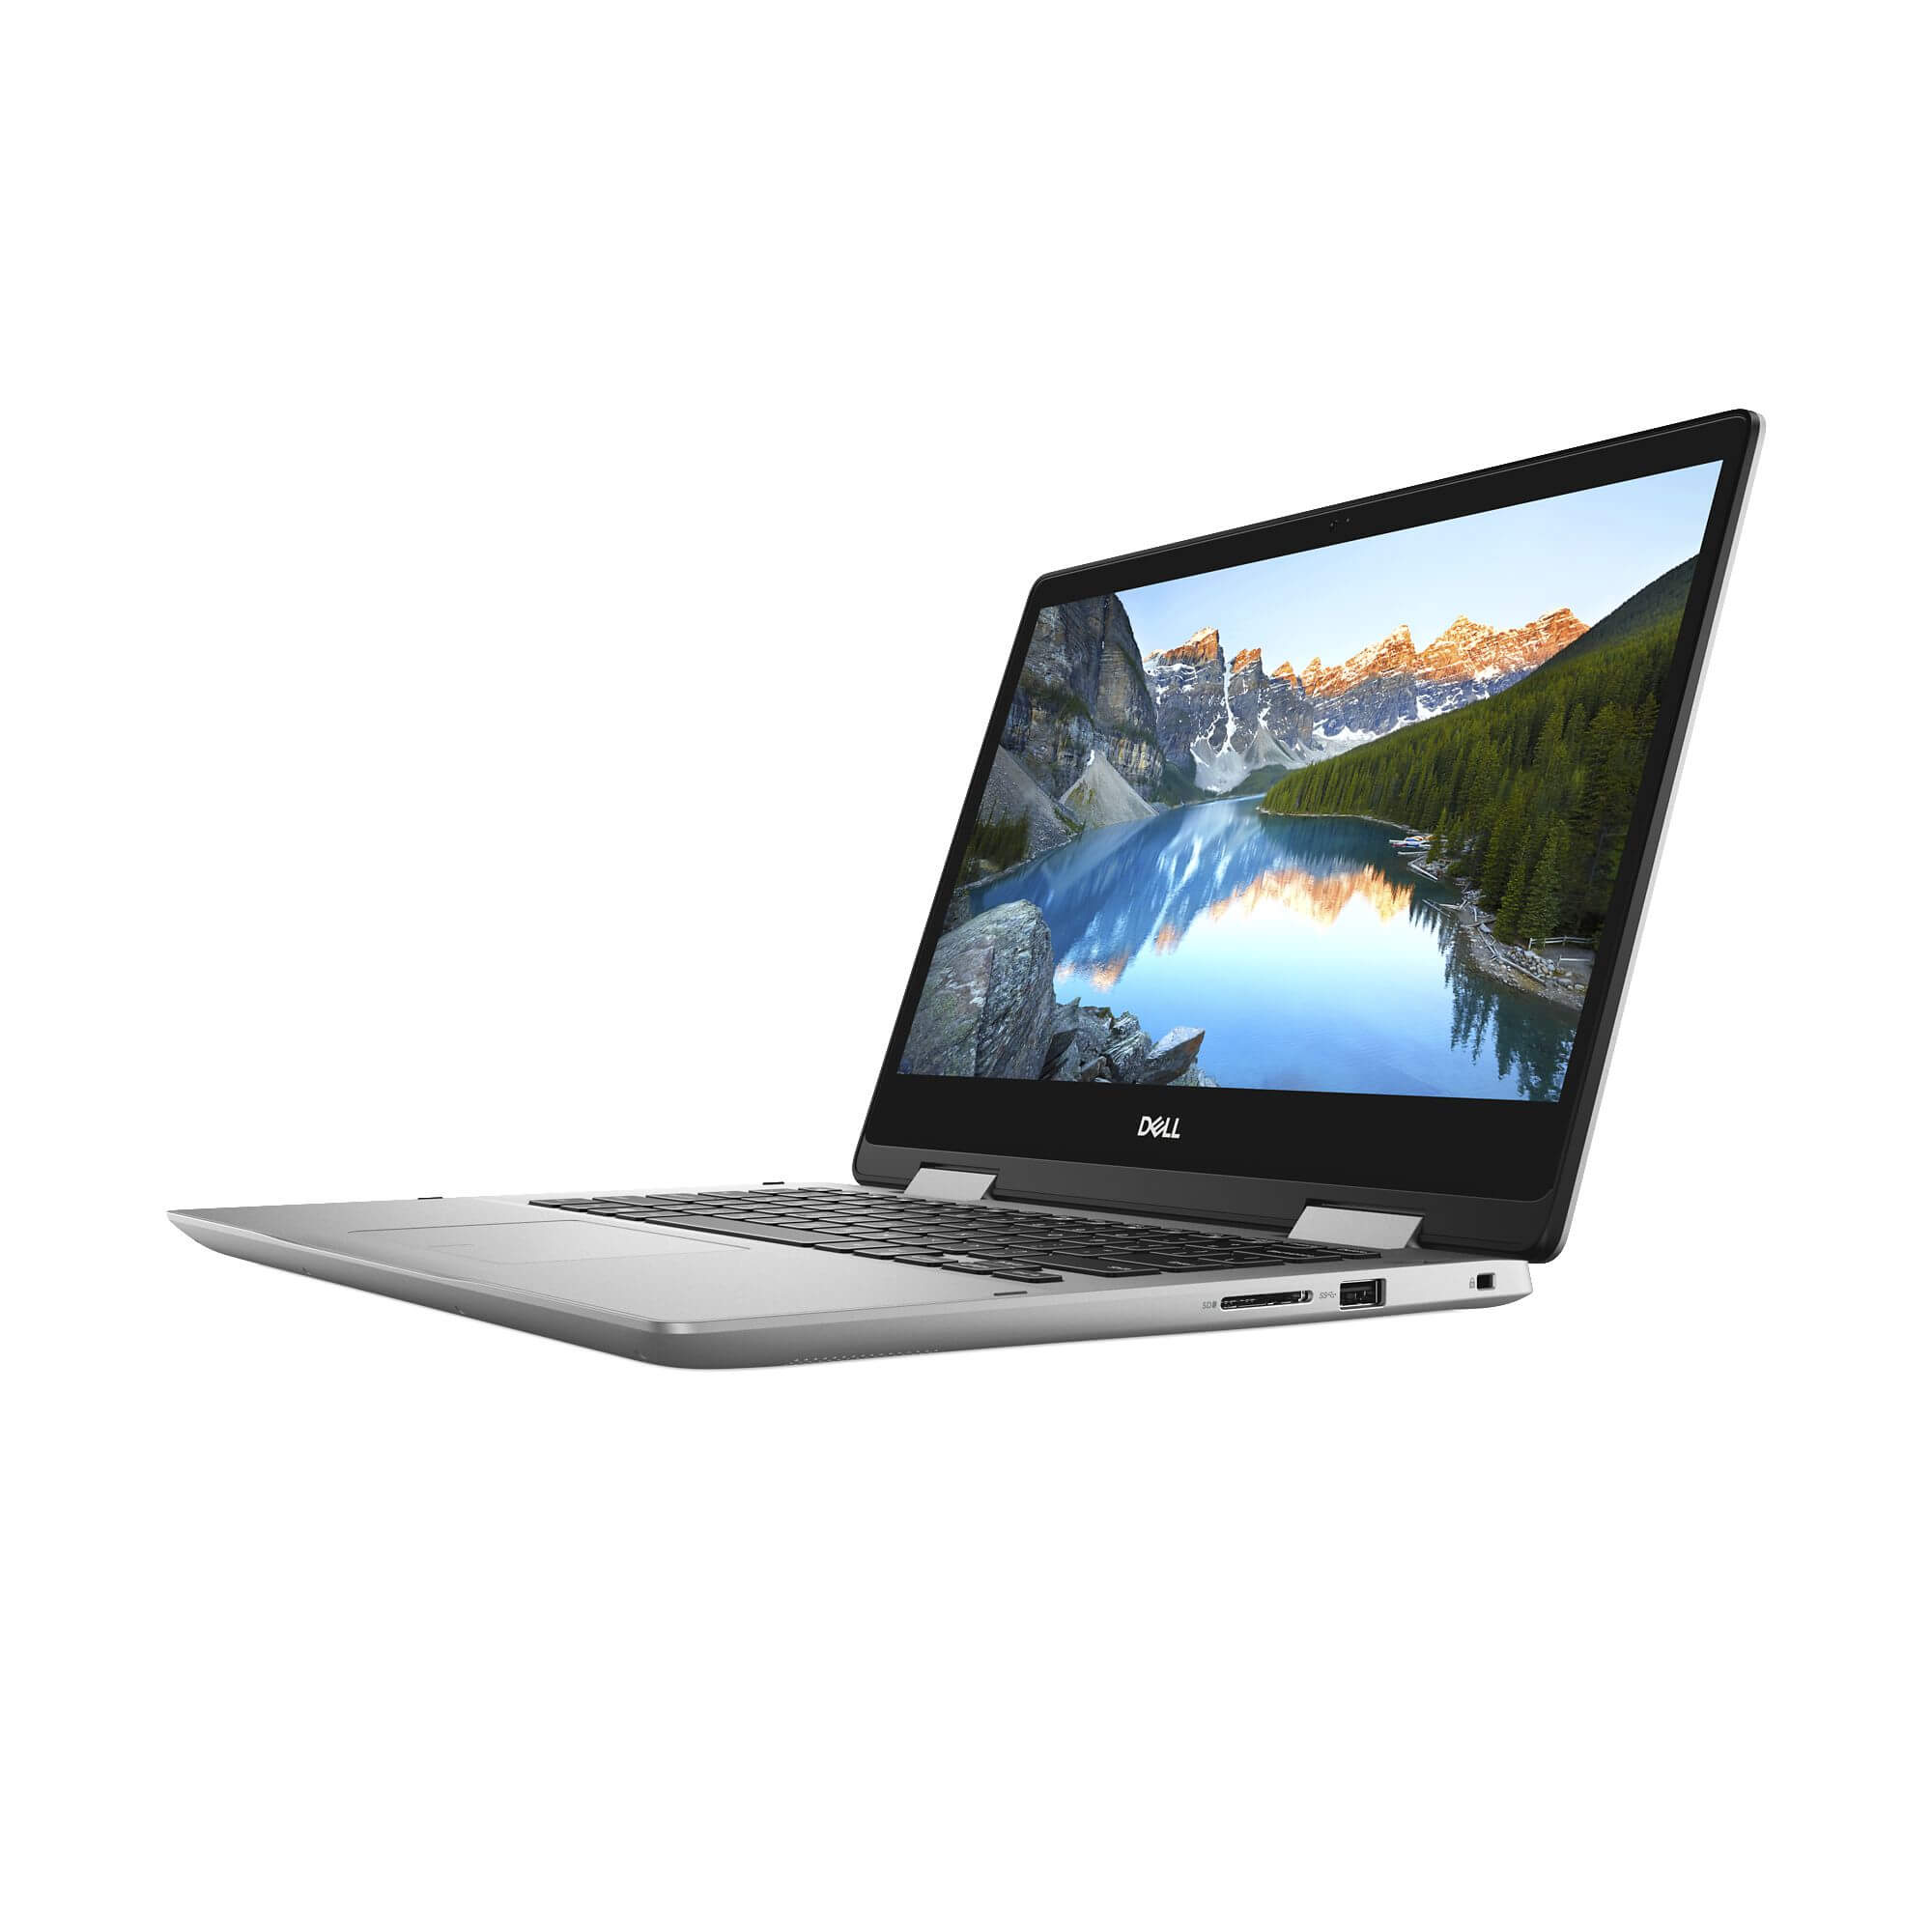 DELL INSPIRION 14 5482-7376 INTEL CORE I5-8265U 1.6 / 8192 MB DDR4 / 256 GB SSD M.2 / WINDOWS 10 HOME COA / 14